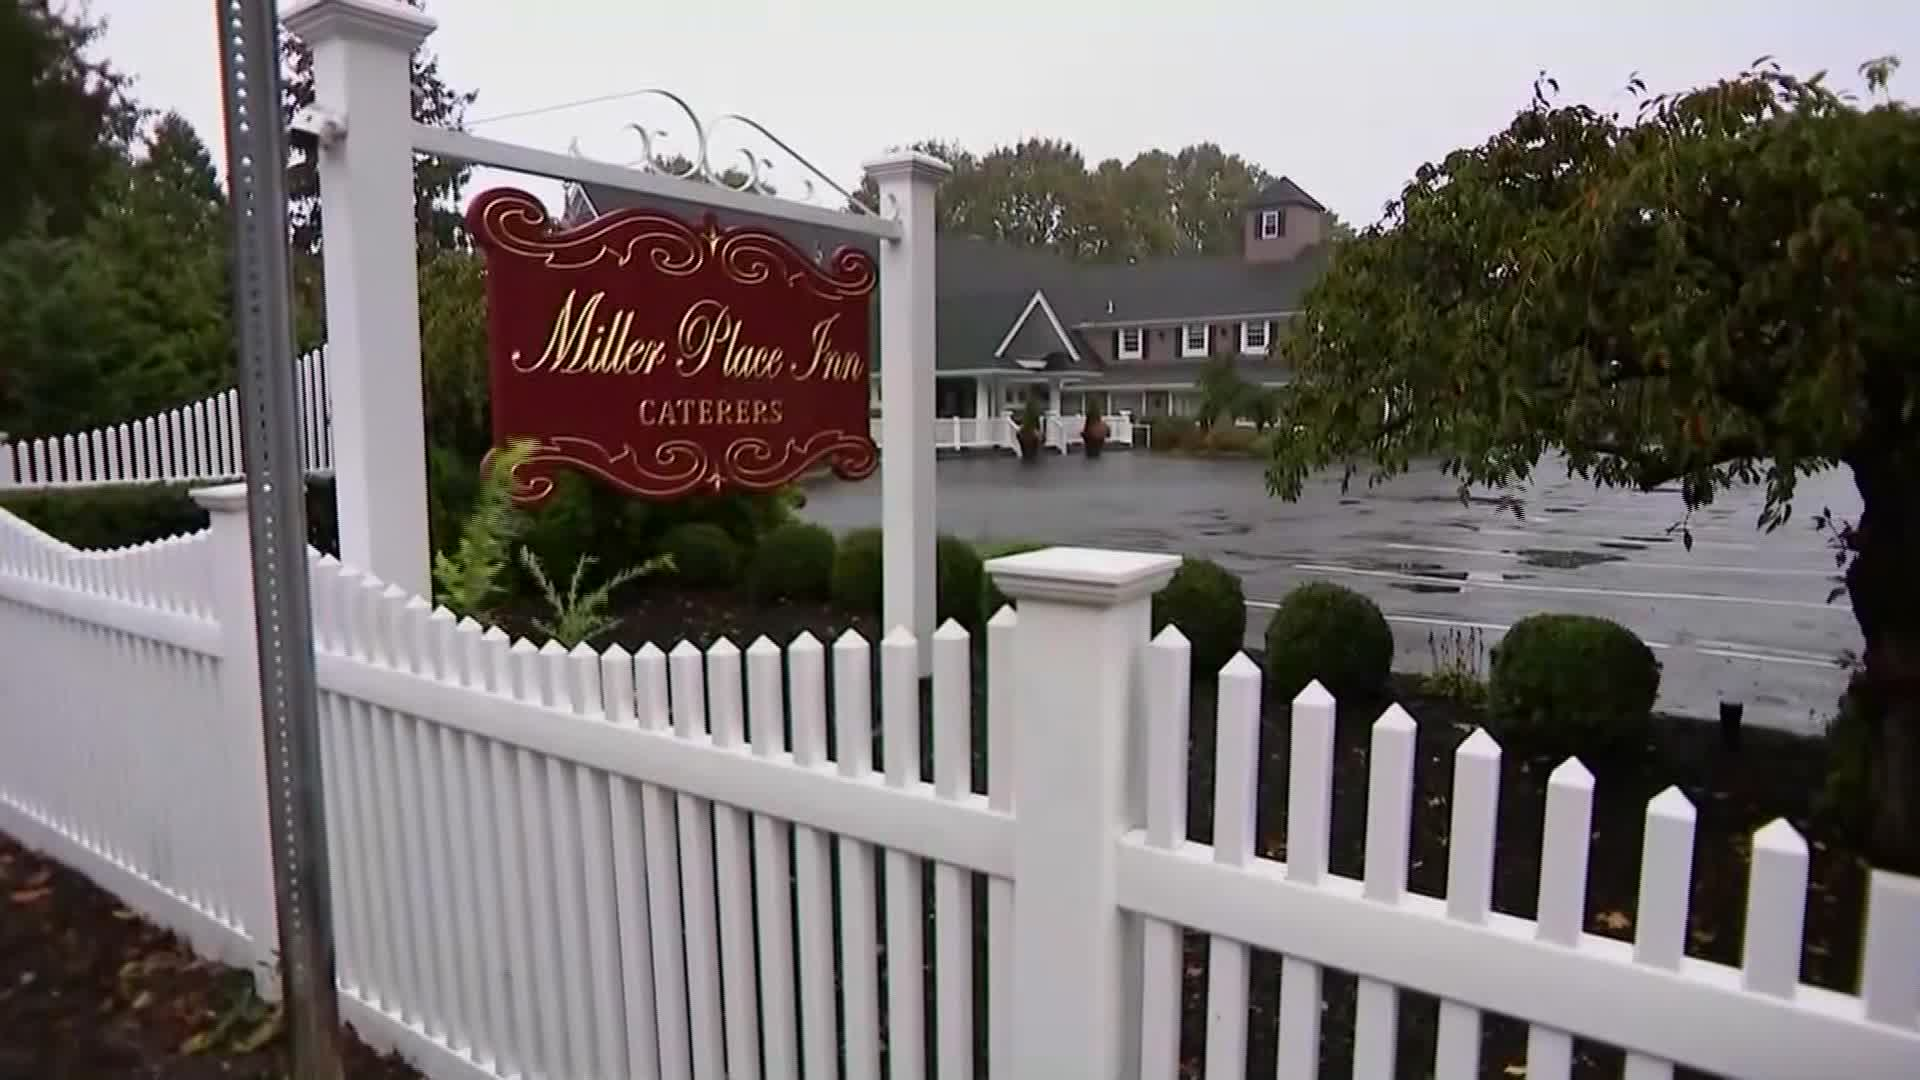 Miller Place Inn in Long Island, New York.